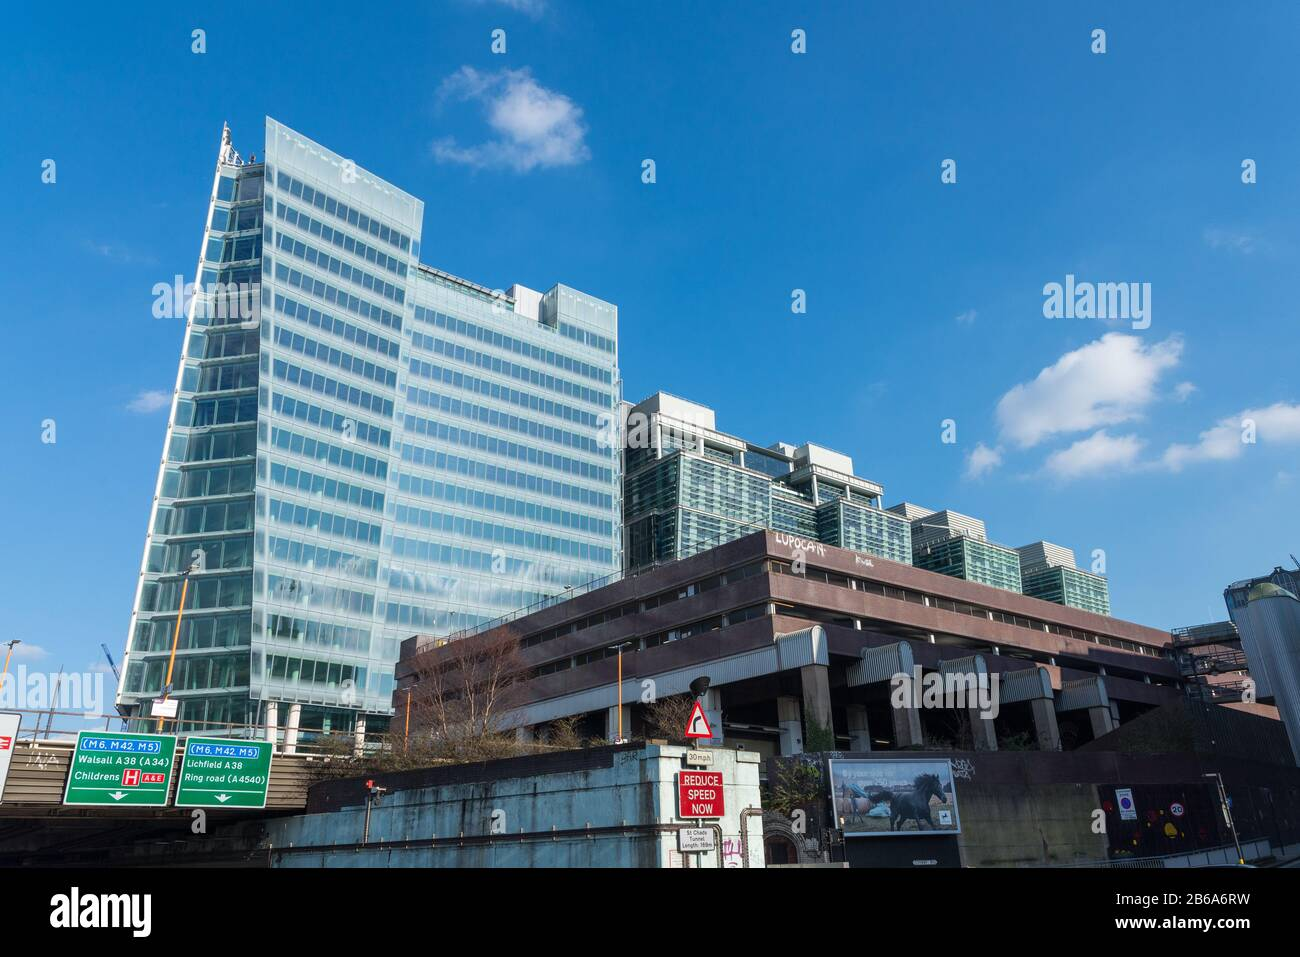 Work on Three Snowhill which is the largest single office development in Birmingham has recently been completed. Snowhill station is in the foreground. Stock Photo